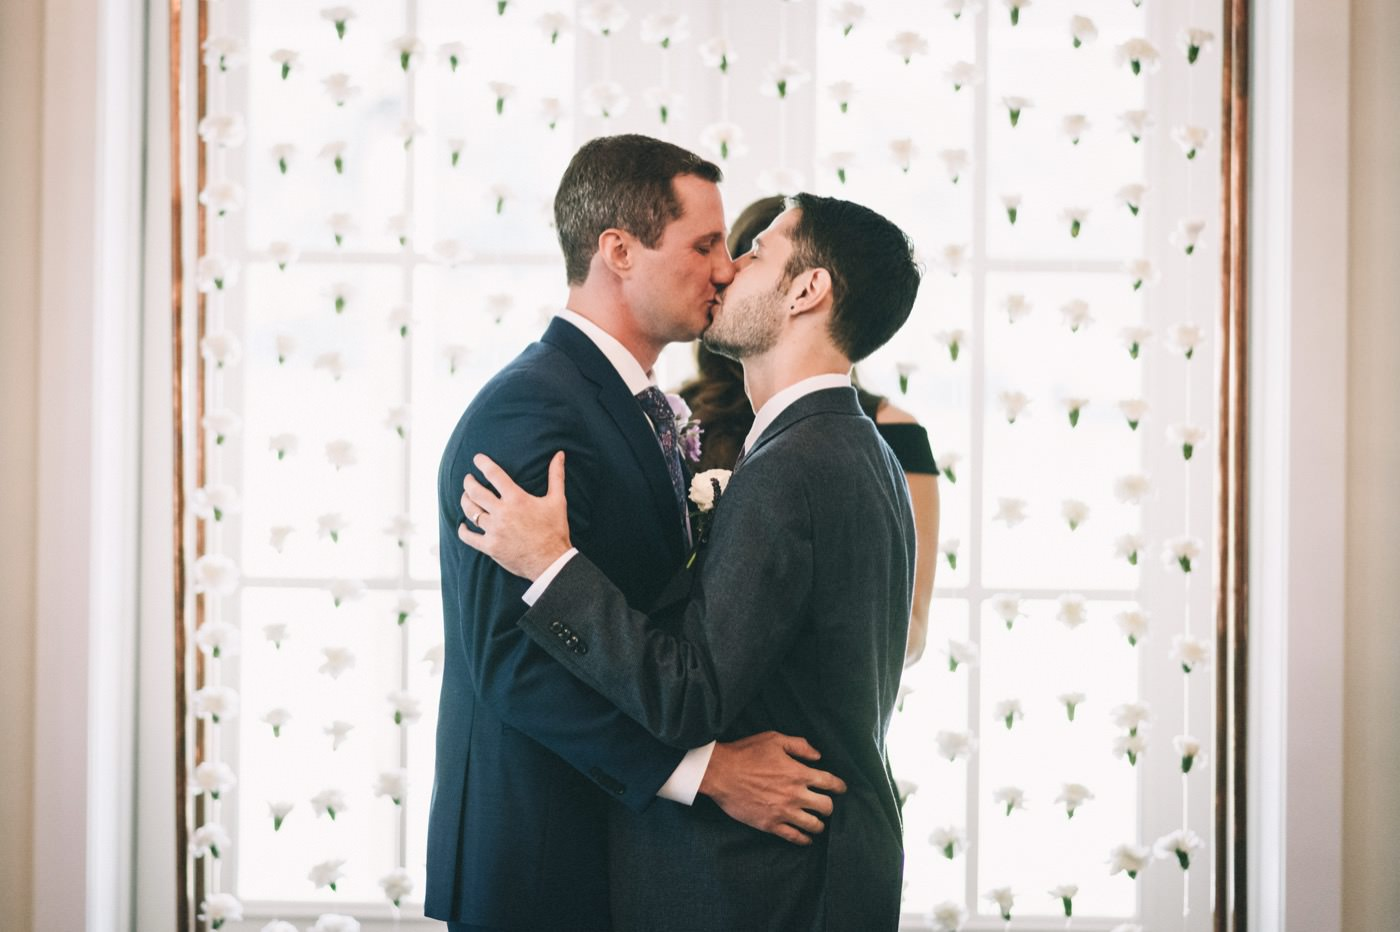 Will-Nate-Louisville-LGBTQ-Pride-Month-Kentucky-Wedding-By-Sarah-Katherine-Davis-Photograpy0026.JPG